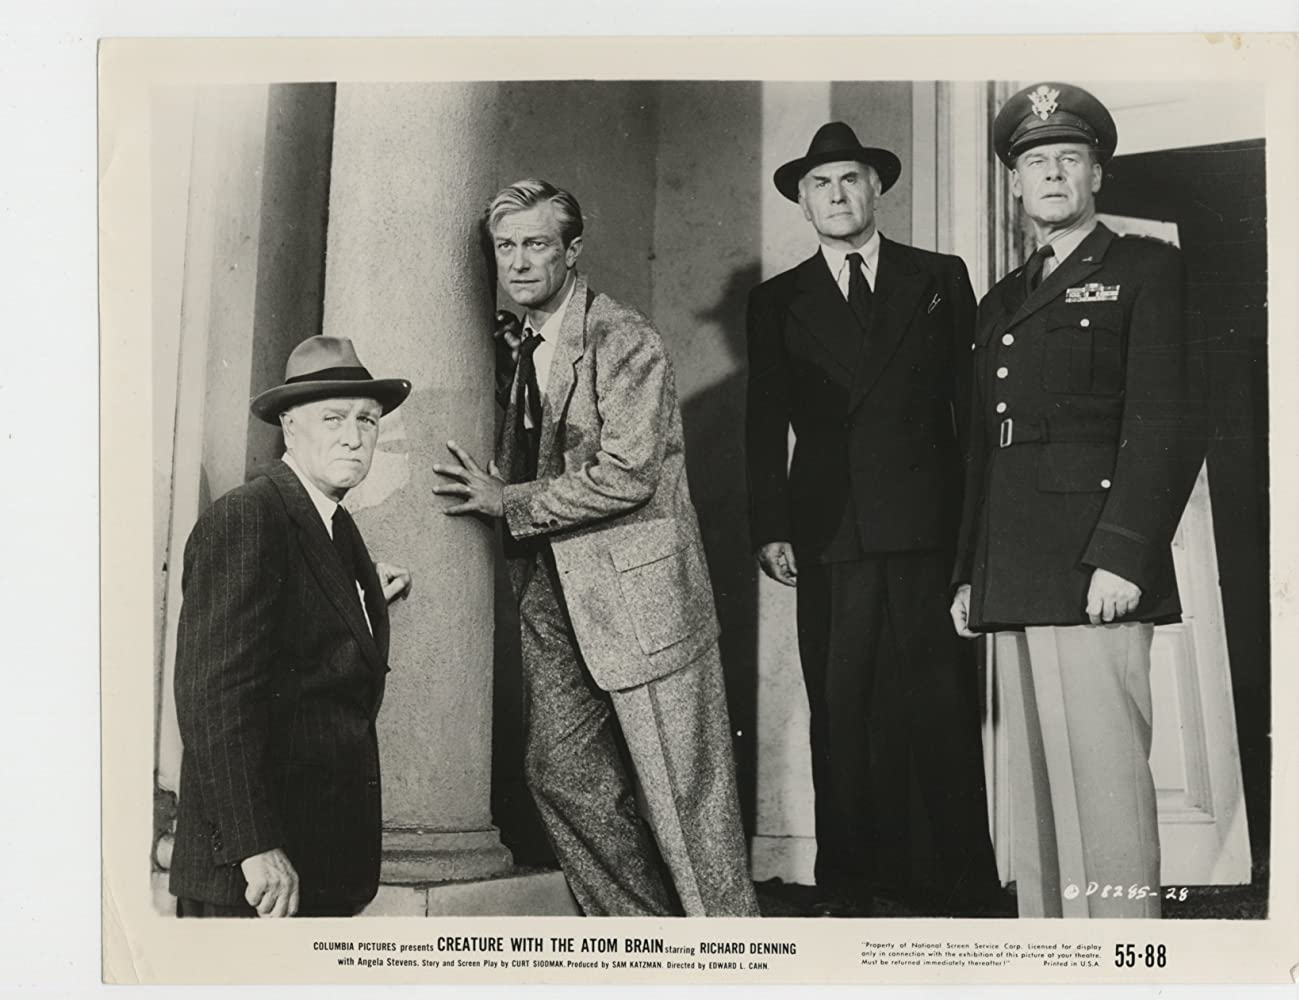 Lane Chandler, Richard Denning, and Pierre Watkin in Creature with the Atom Brain (1955)